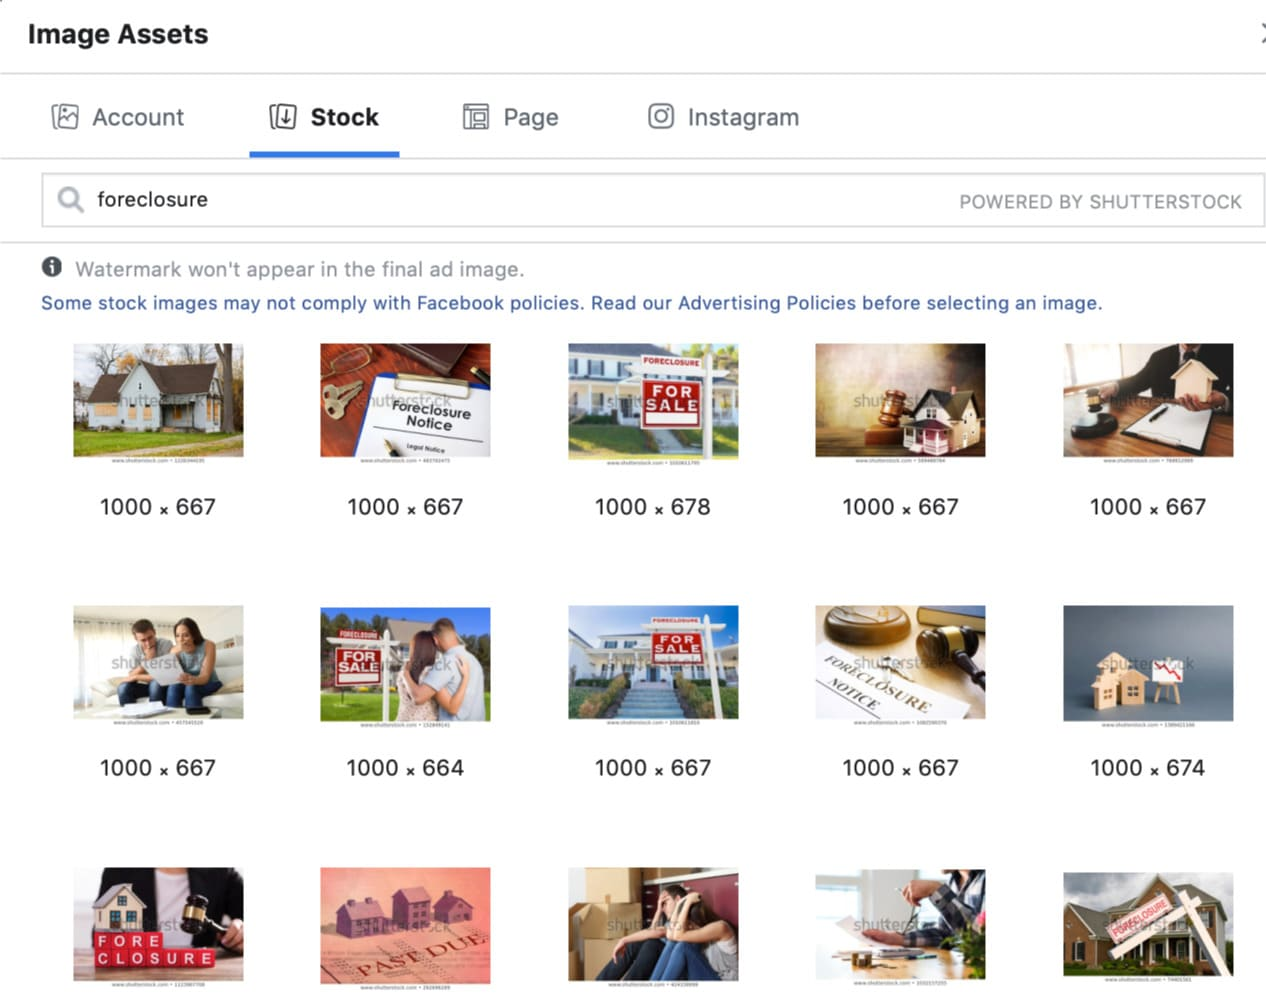 Stock image selection in Facebook ads interface